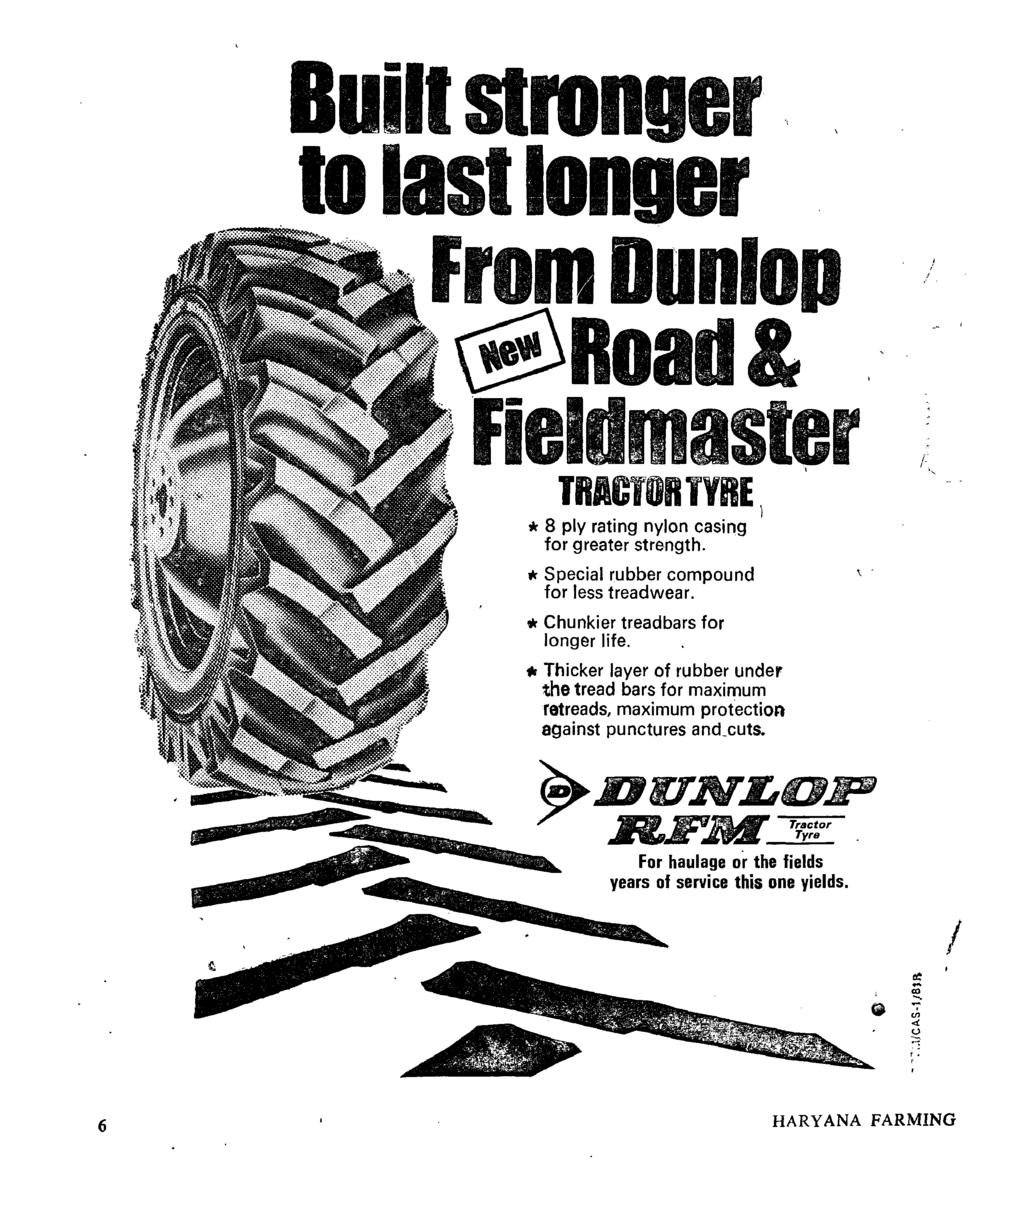 a Built stronger.. to last longer From Donlop. @Road& Fiel master TRACTOR lyre) * 8 ply rating nylon casing for greater strength. * Special rubber compound for less treadwear.